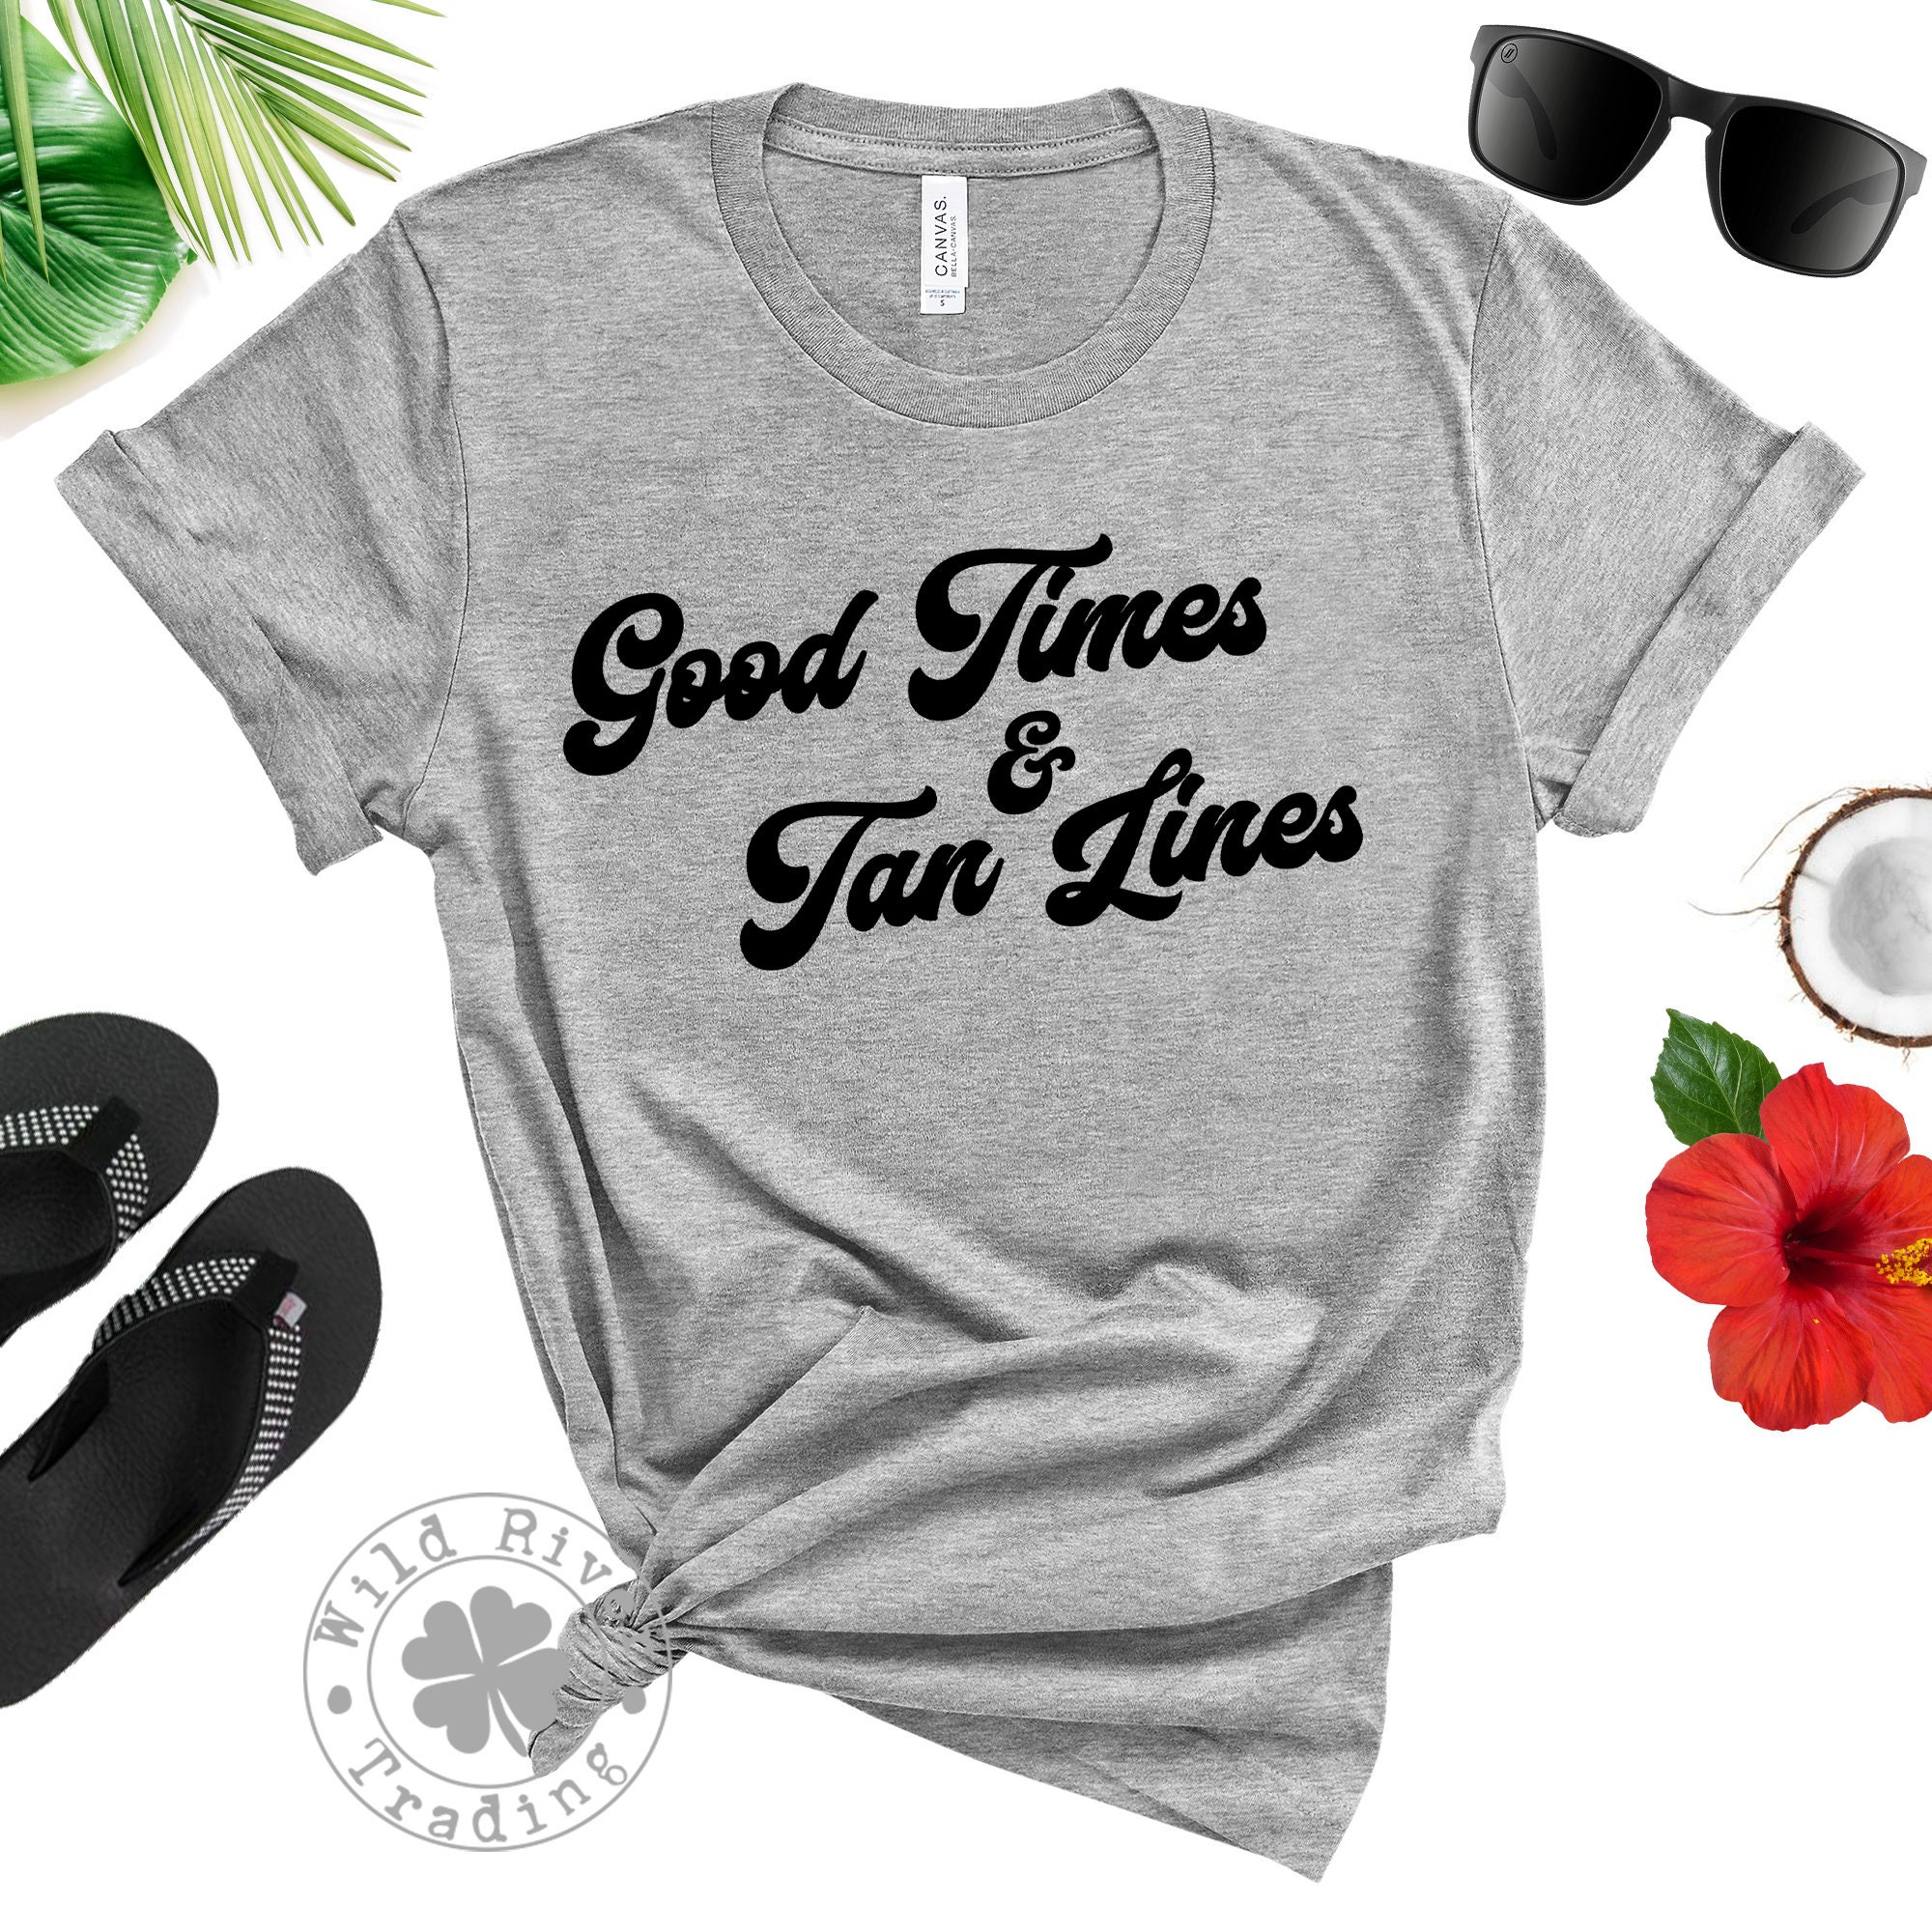 Good Times And Tan Lines Summer Vacation Quote Shirt Fun Beach Party Tee Unisex T Shirt Gift For Men Women